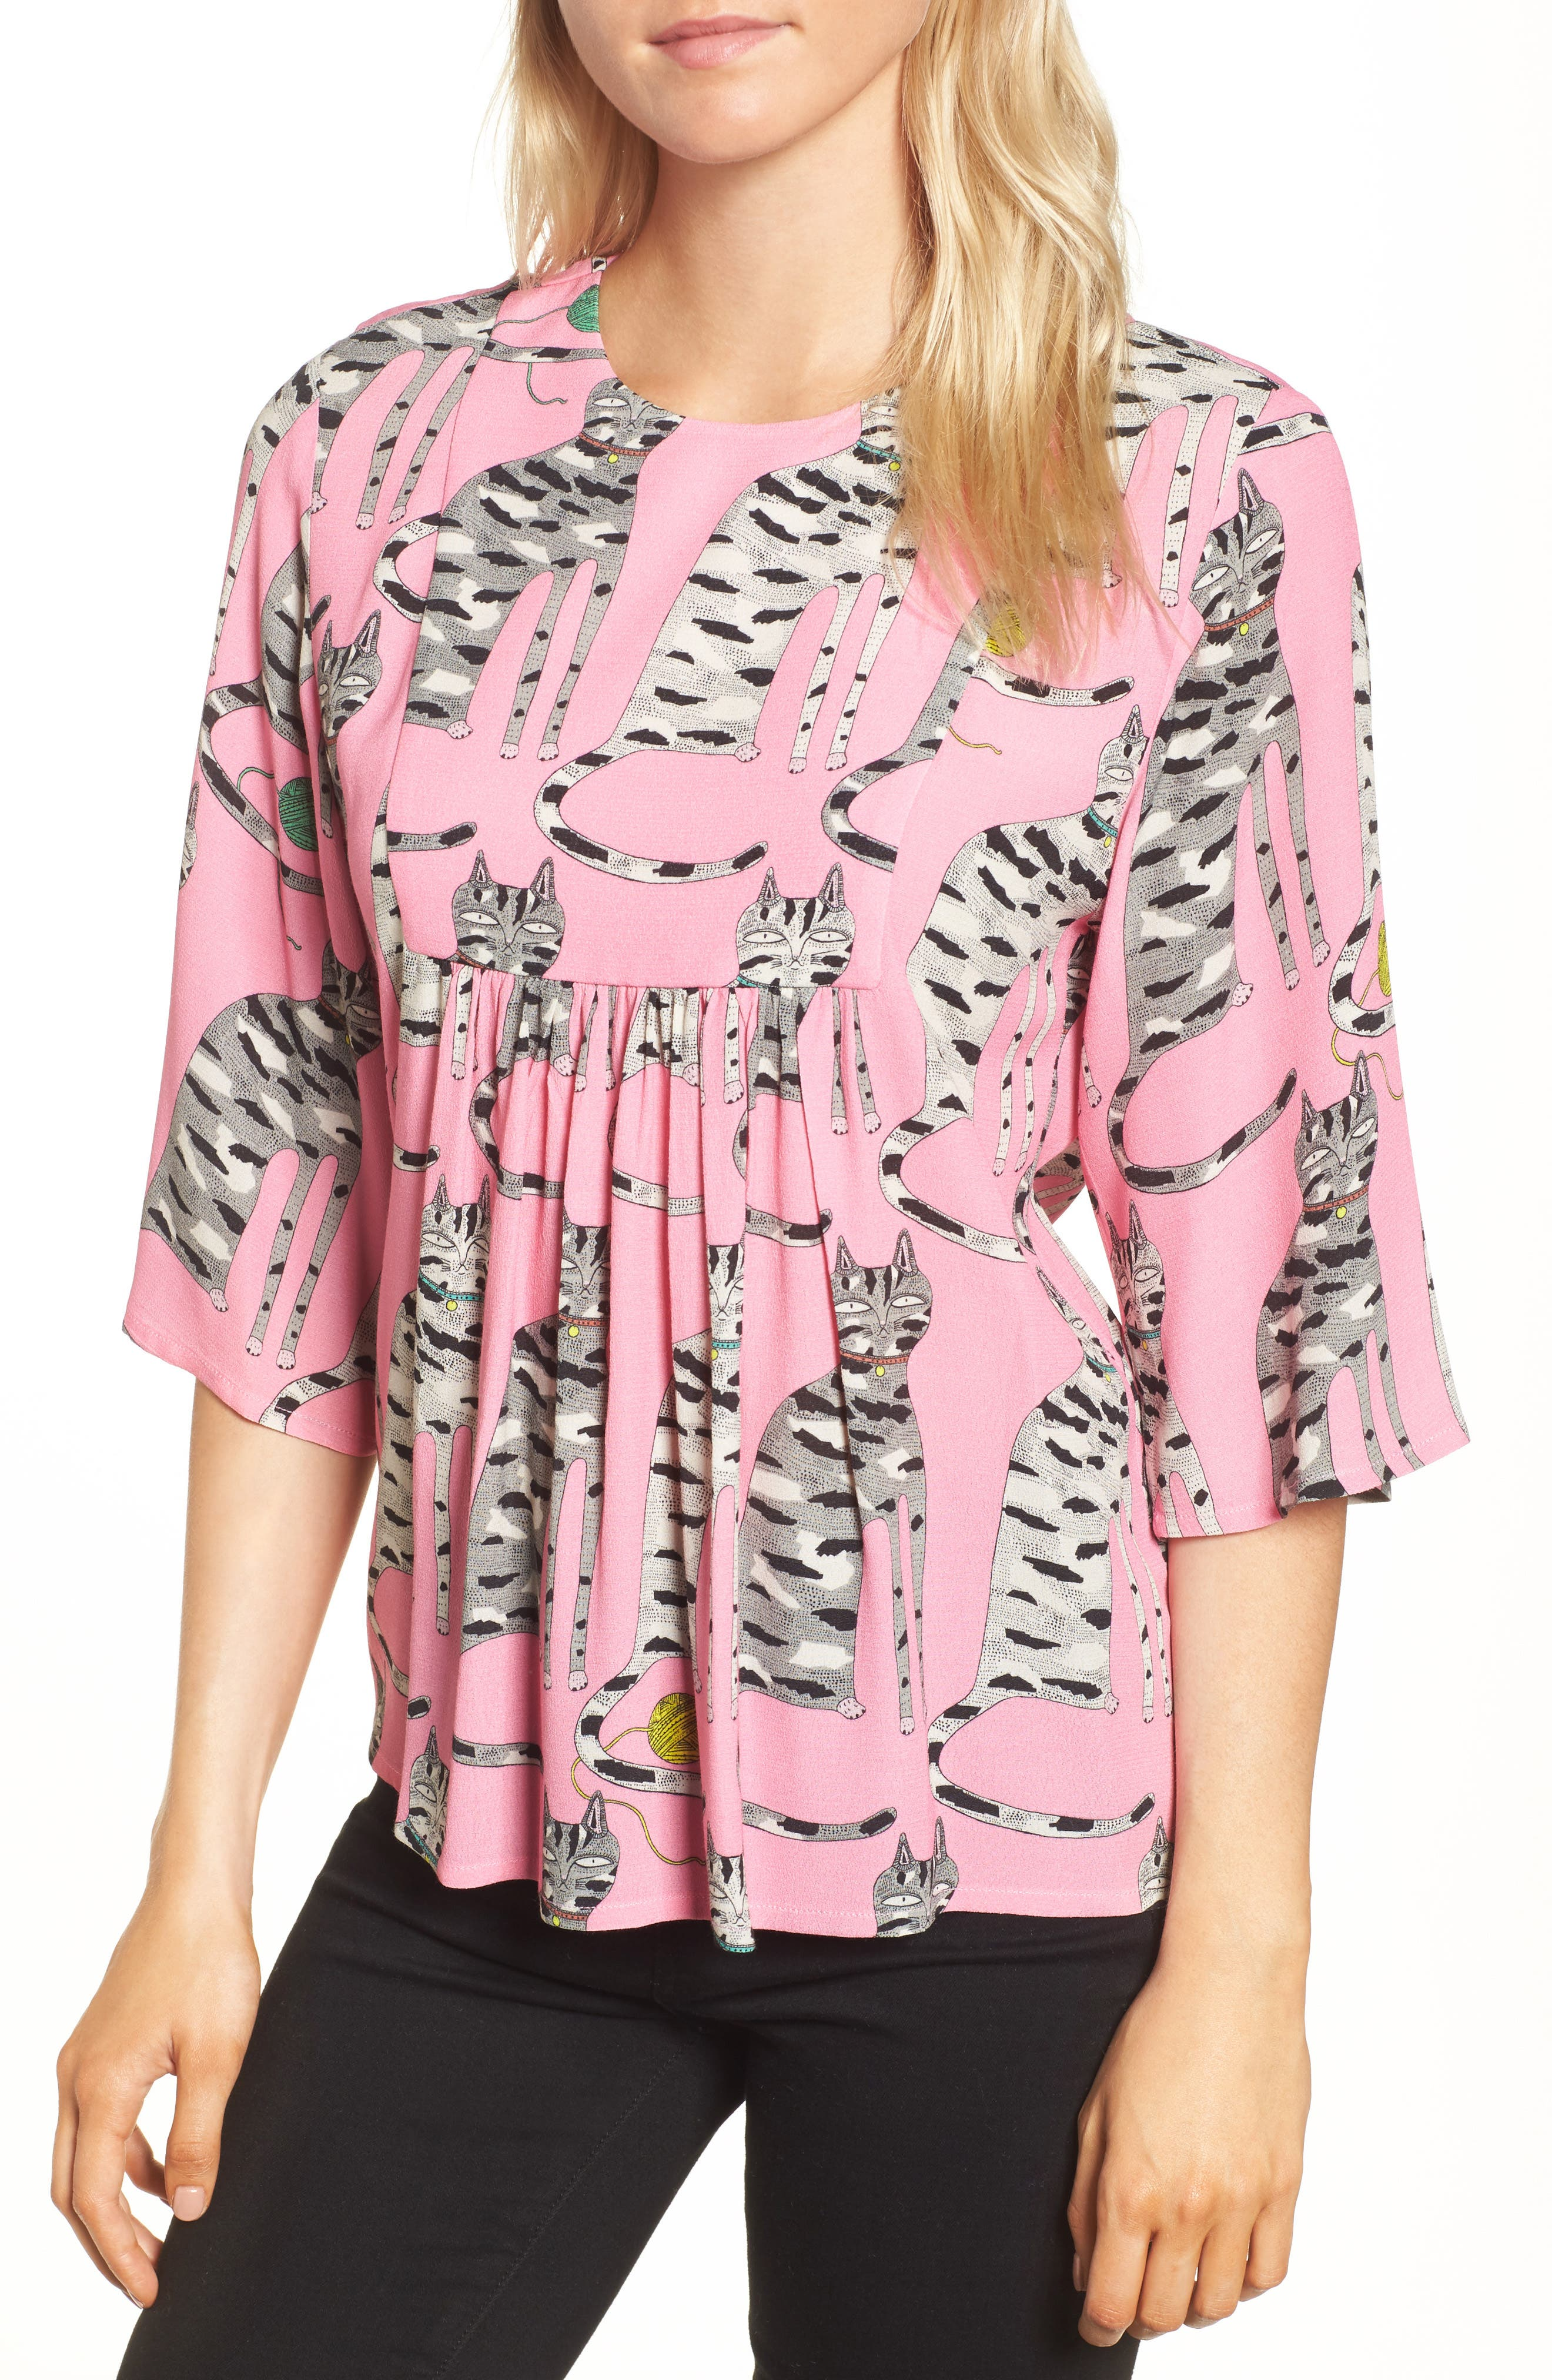 Paul & Joe Sister Cat Print Blouse